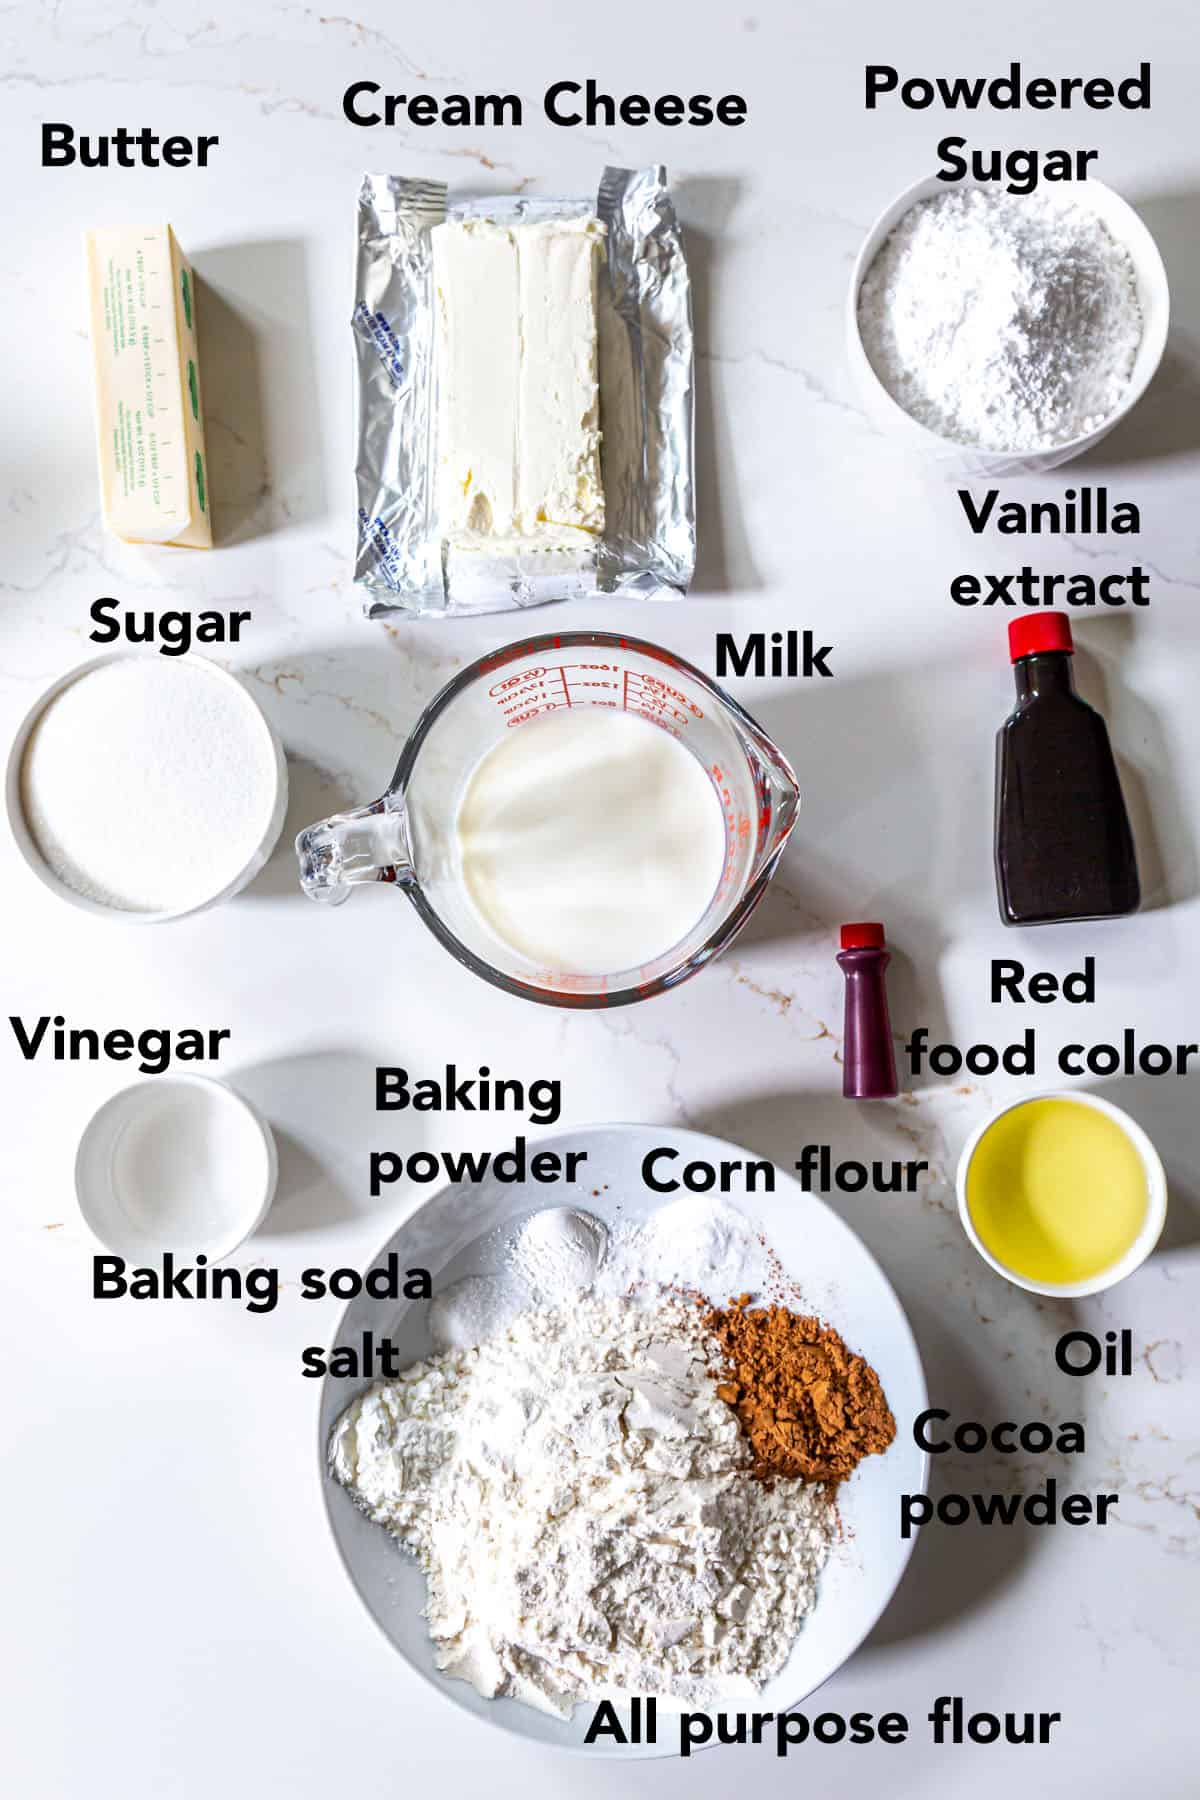 Red Velvet cupake recipe Ingredients in a bowl on white surface